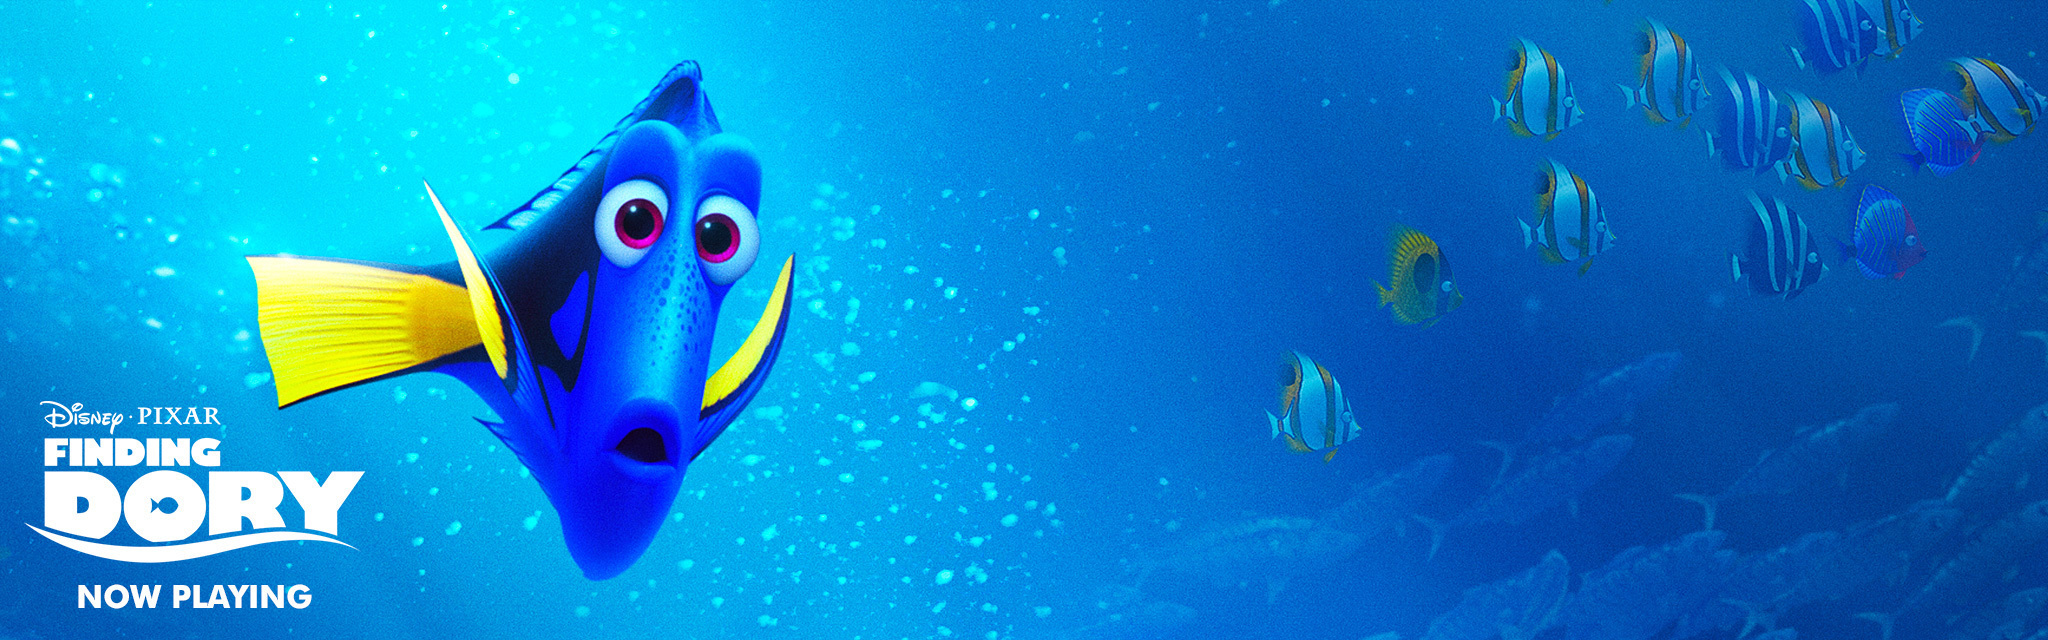 Finding Dory - Get Tickets - Hero